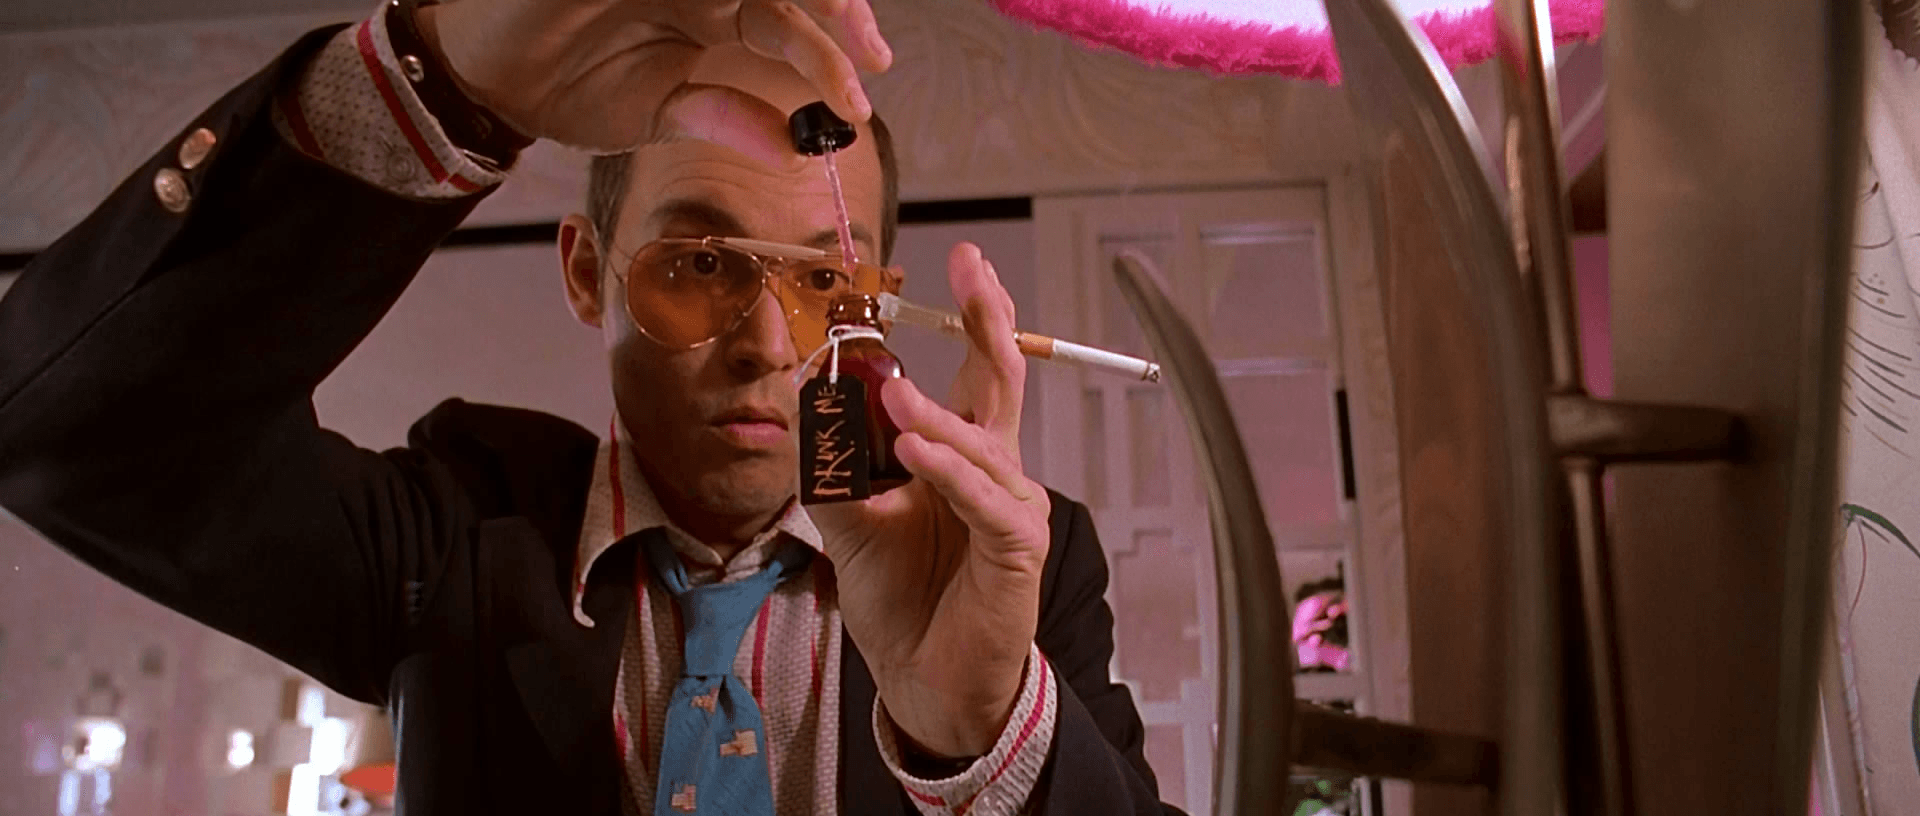 Fear and Loathing in Las Vegas (1998) by Terry Gilliam